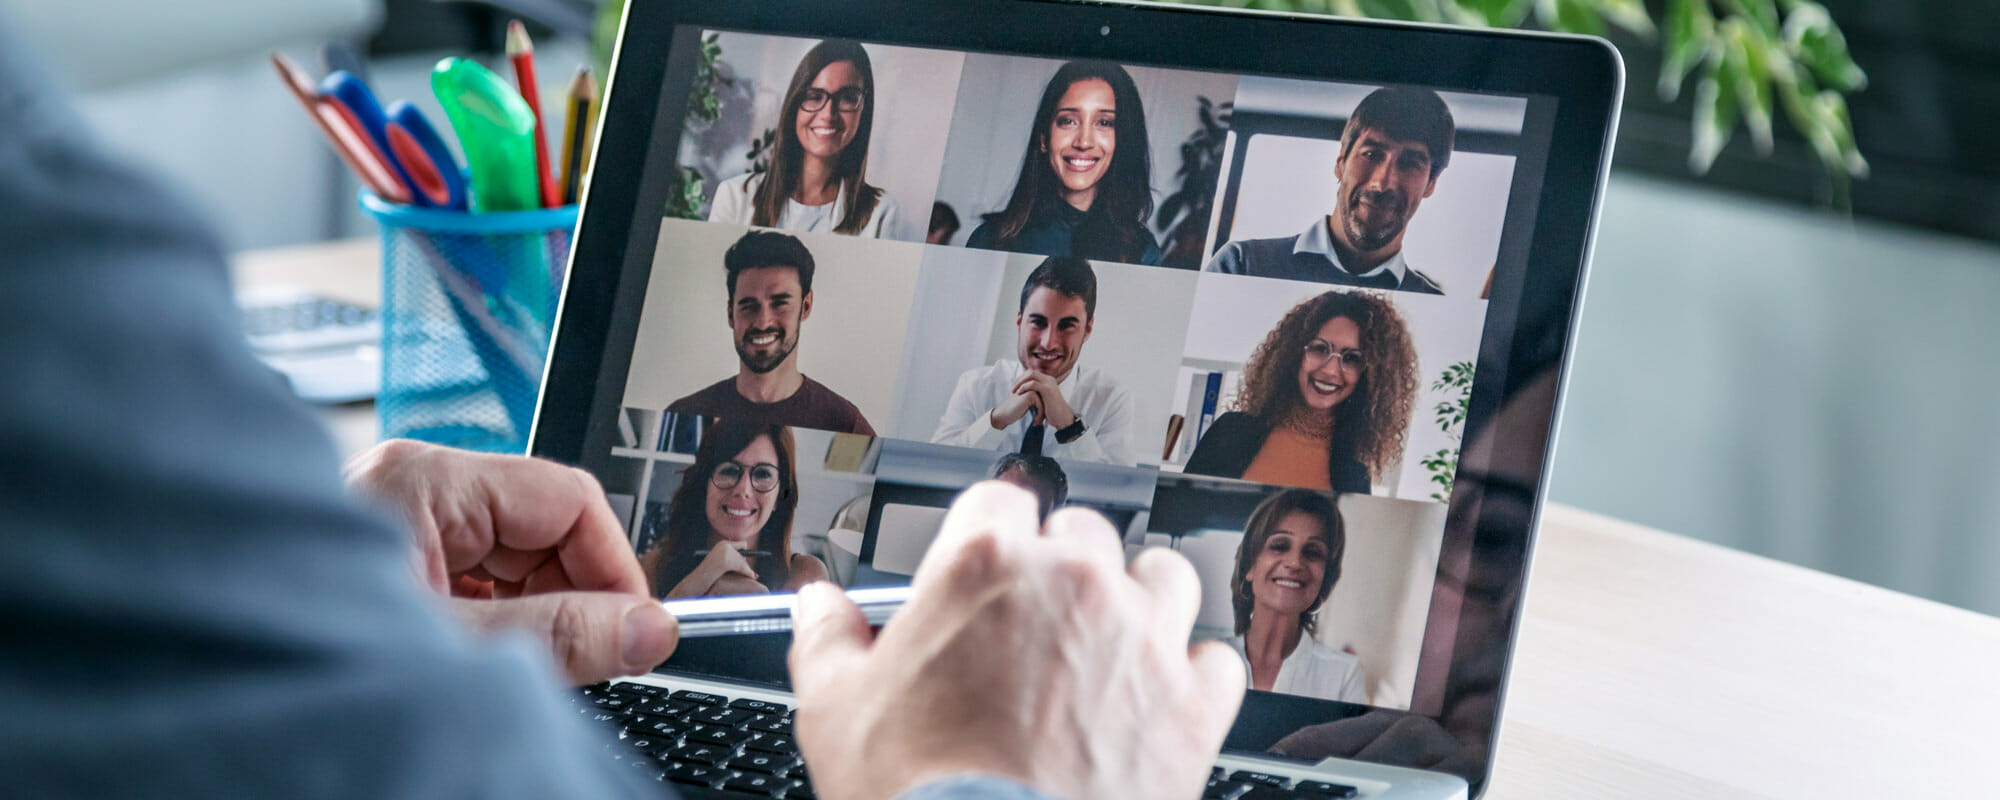 Video call with other professionals on a laptop